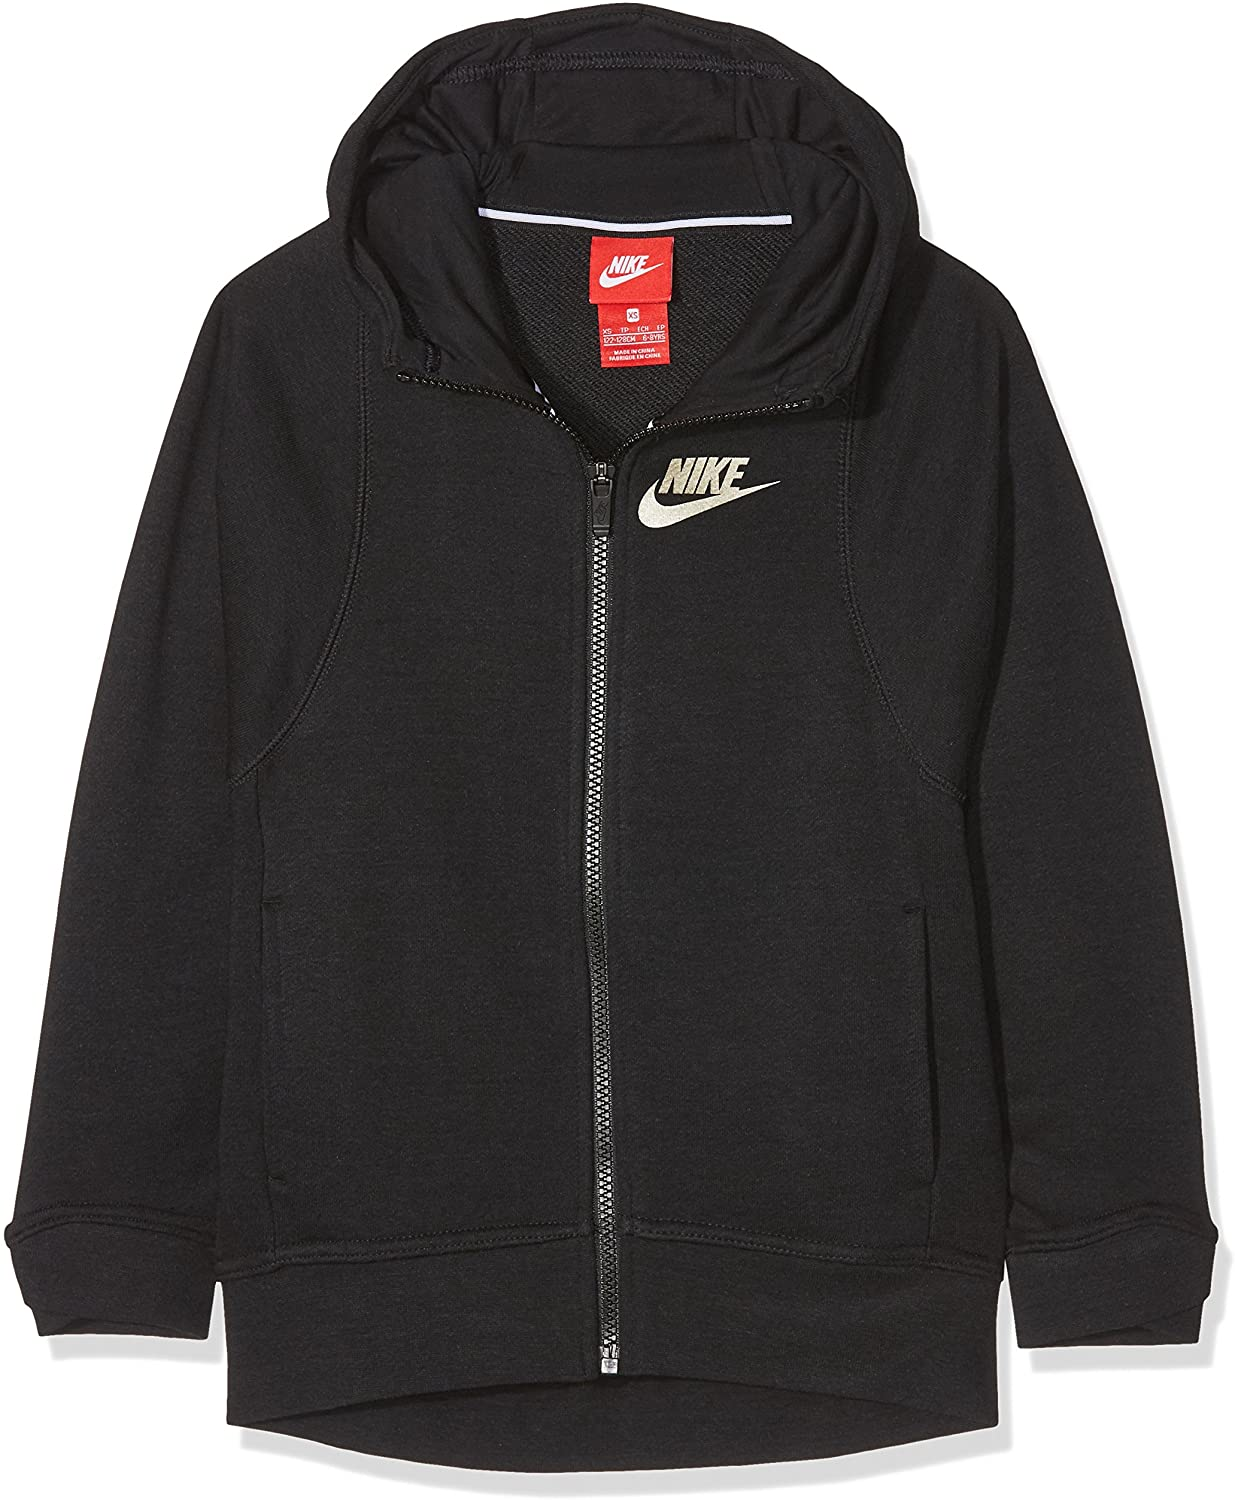 Nike Sportswear Girl's (Big Kids) Full Zip Modern NSW Hoodie - Black (Medium)